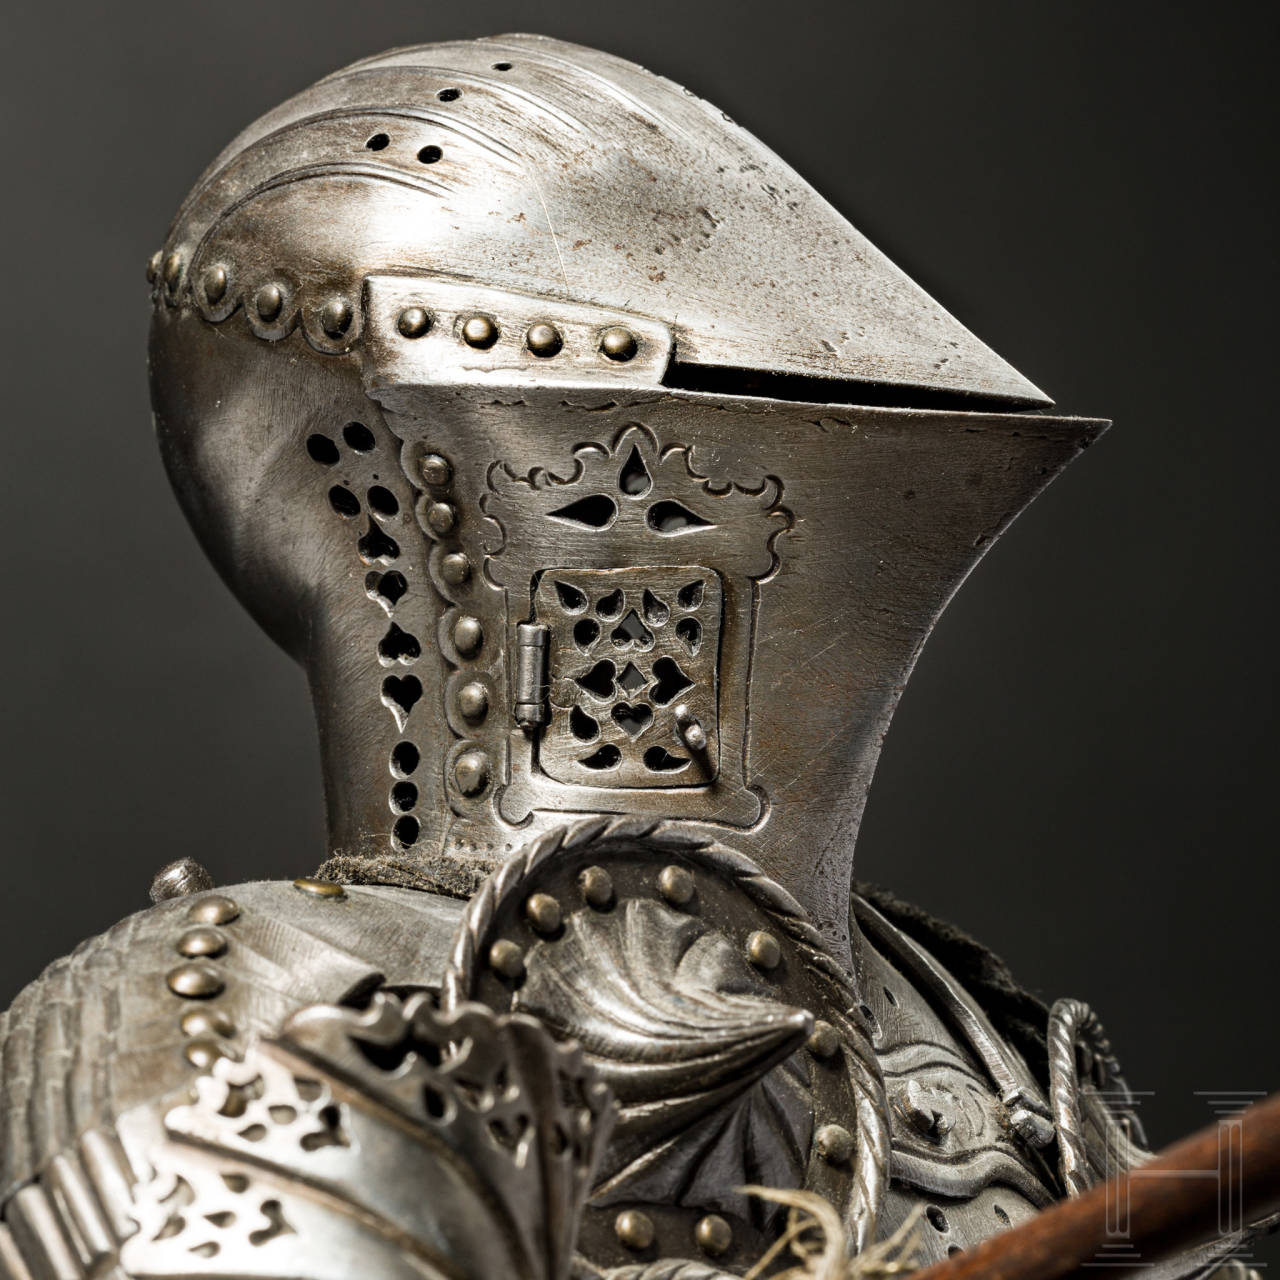 A miniature suit of jousting armour, made by the artisan smith Schneider of Munich before 1923